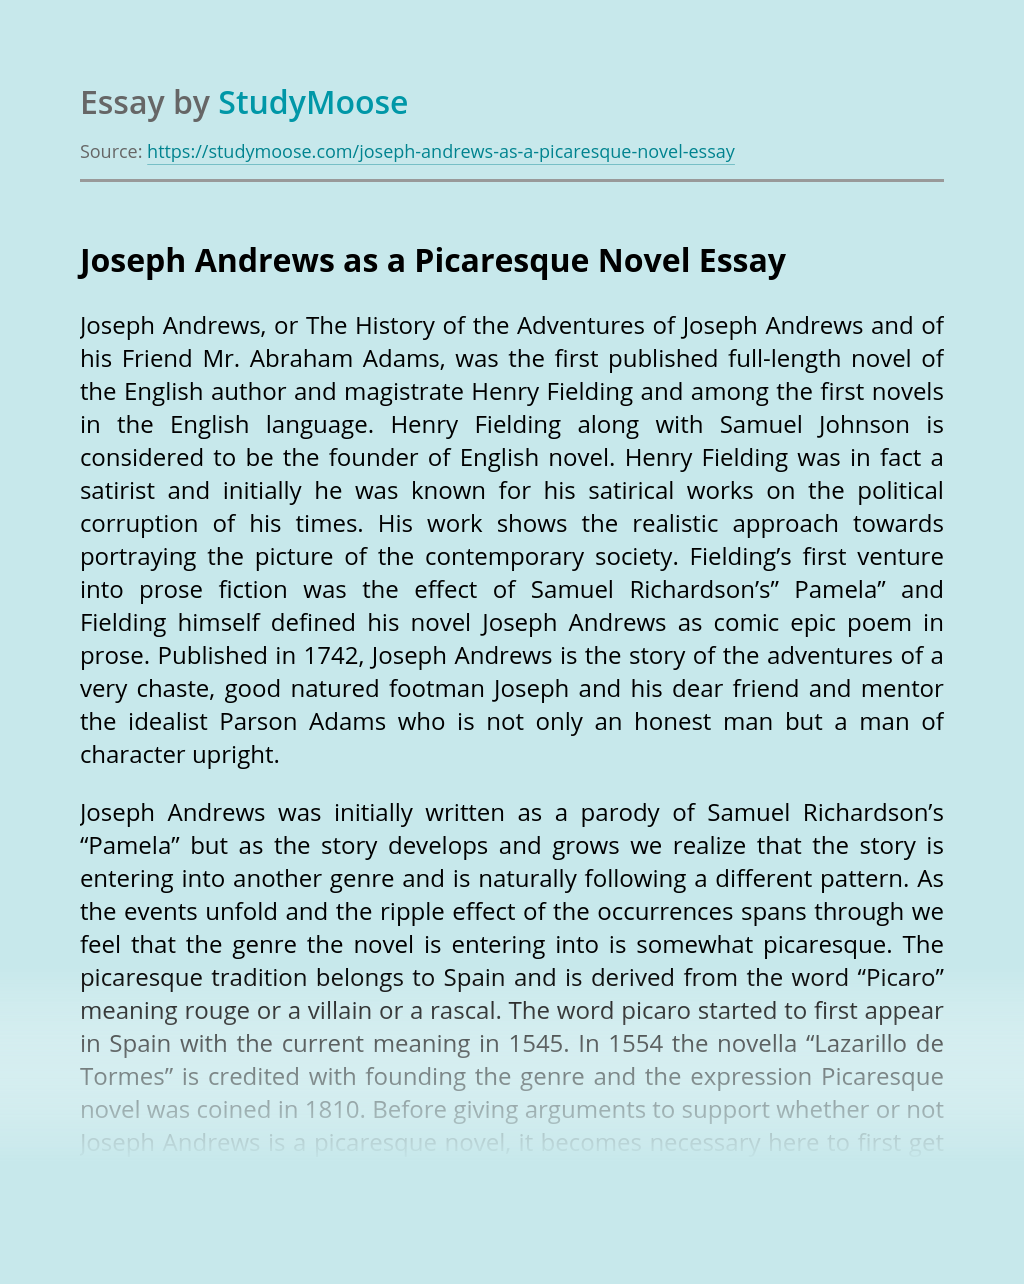 Joseph Andrews as a Picaresque Novel